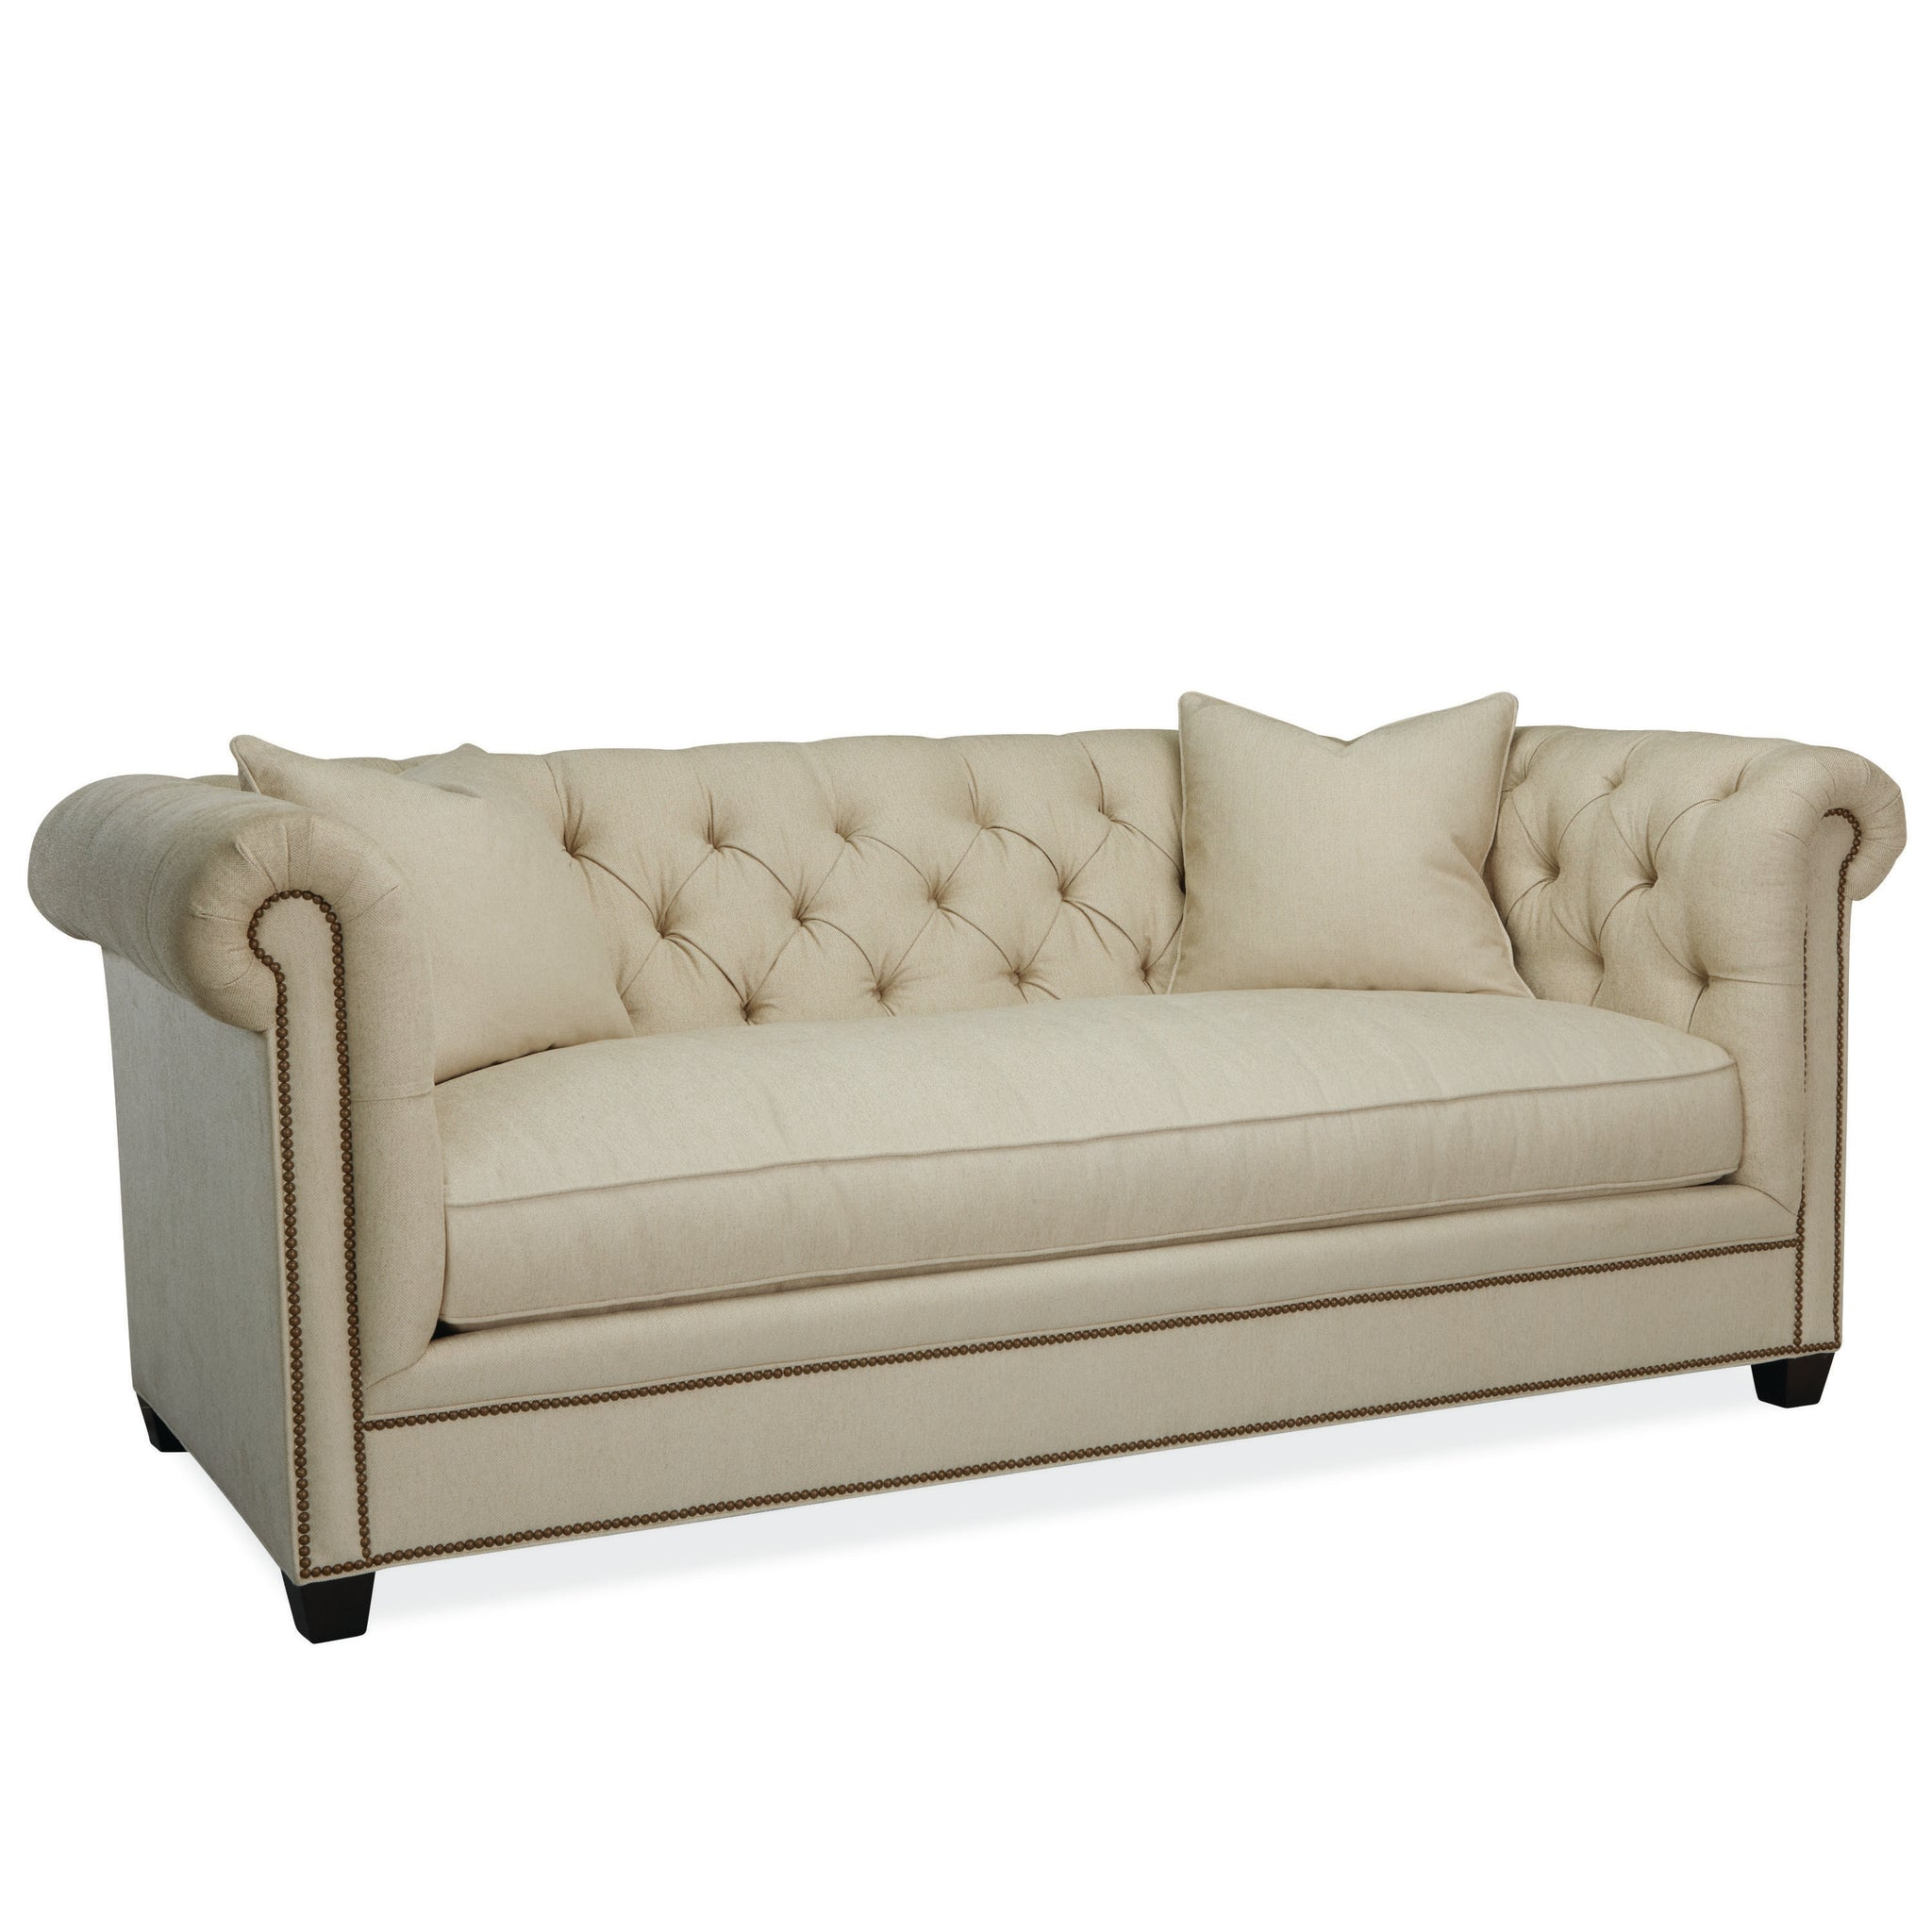 The Oscar tufted sofa in green